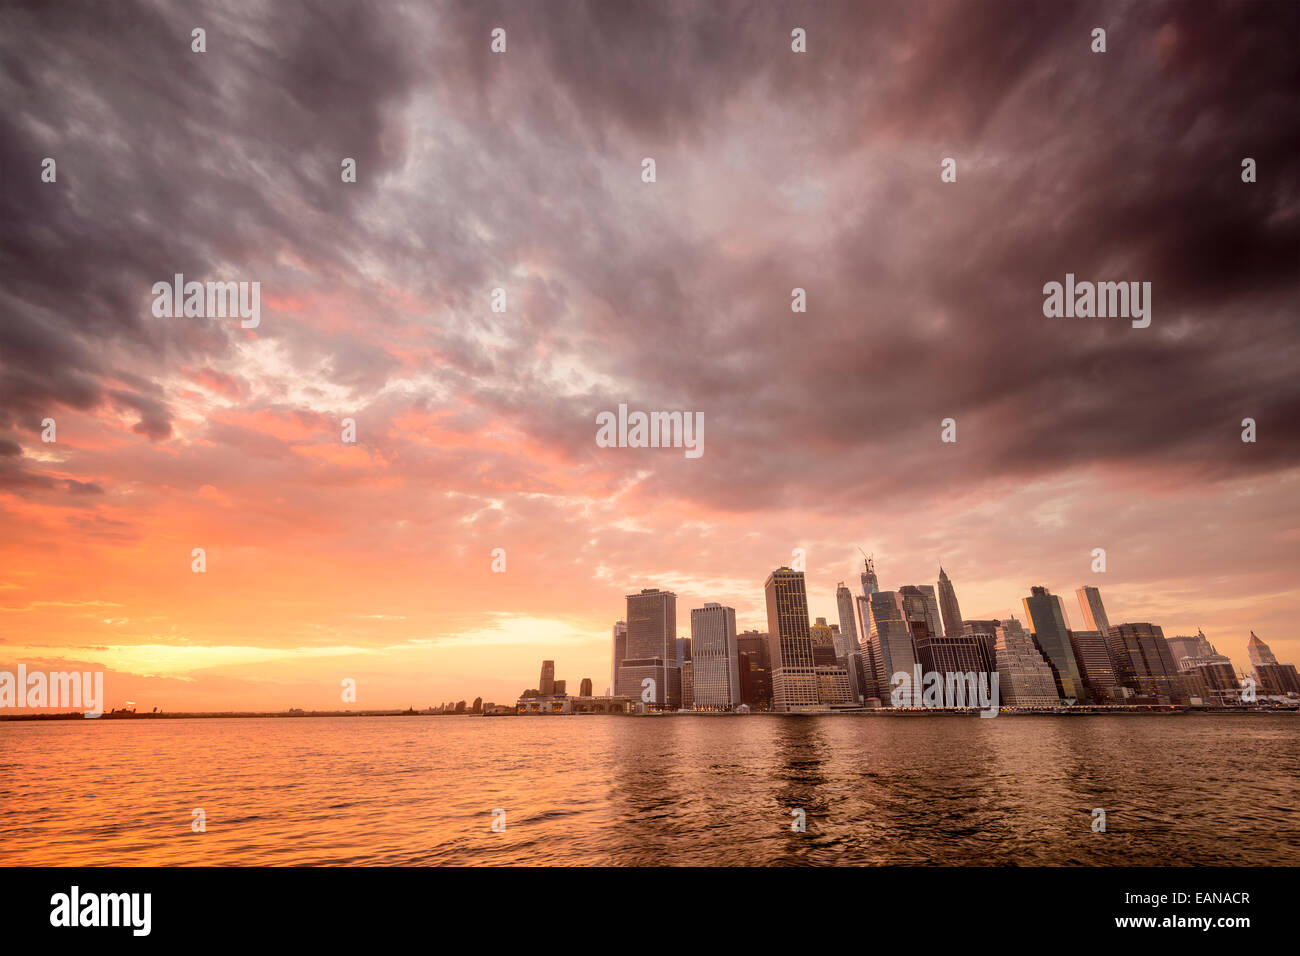 New York City, USA city skyline of Lower Manhattan at sunset. - Stock Image